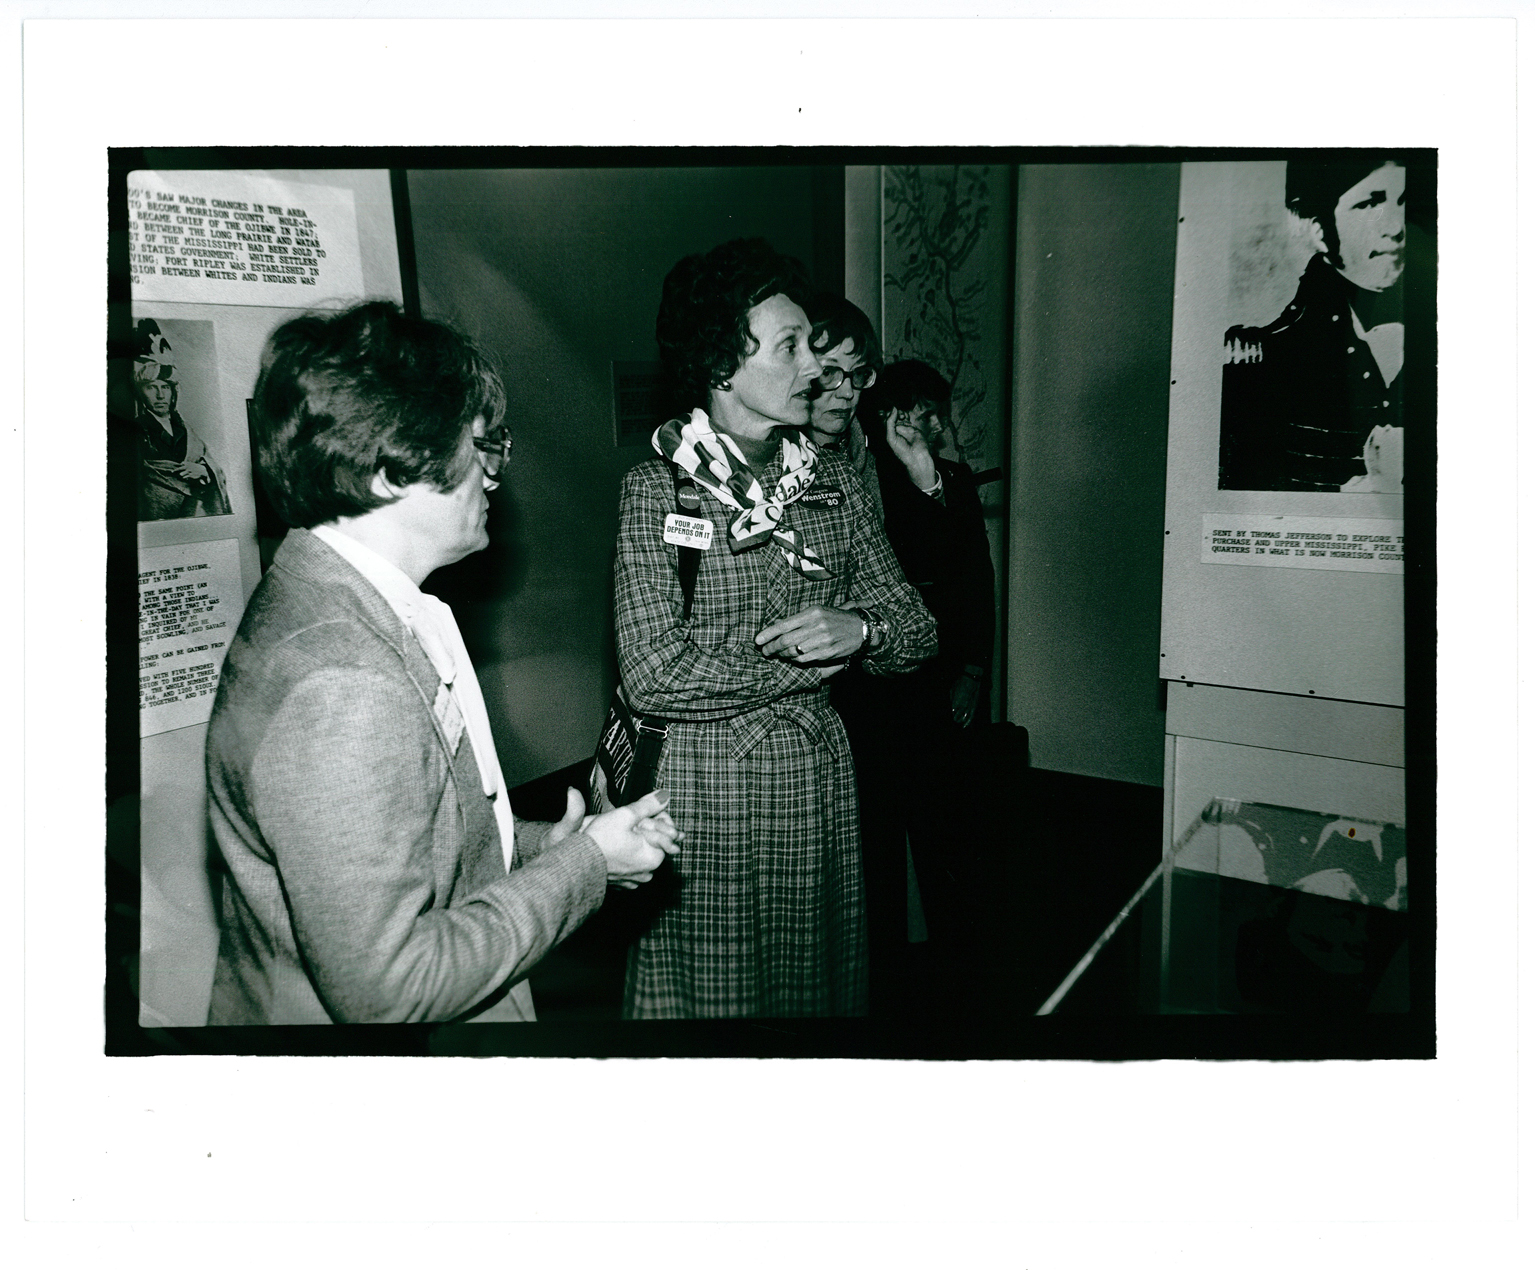 Jan Warner with Joan Mondale and two unidentified women, The Charles A. Weyerhaeuser Memorial Museum, Little Falls, MN, October 1980. MCHS Collections #1981.3.1.